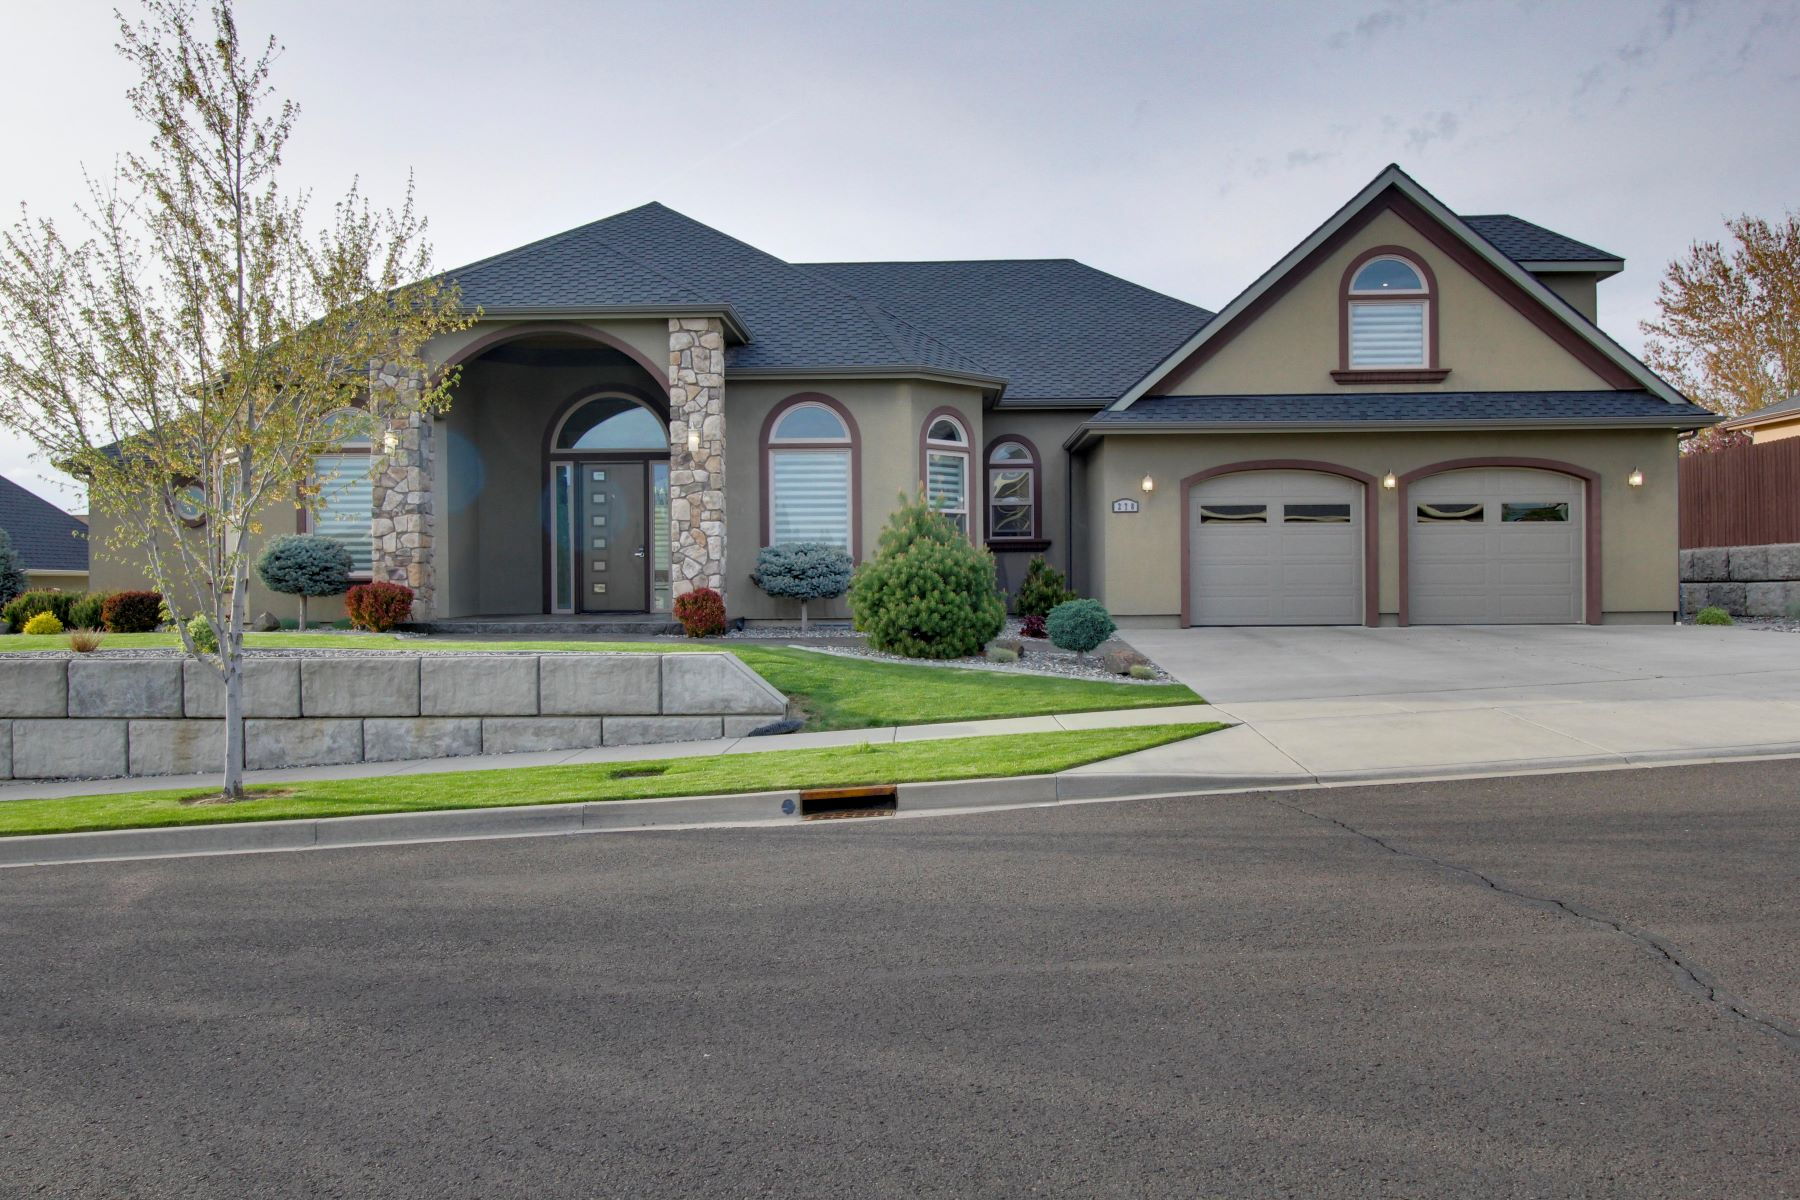 Single Family Homes for Sale at 278 Coyote Ridge Rd Walla Walla, Washington 99362 United States